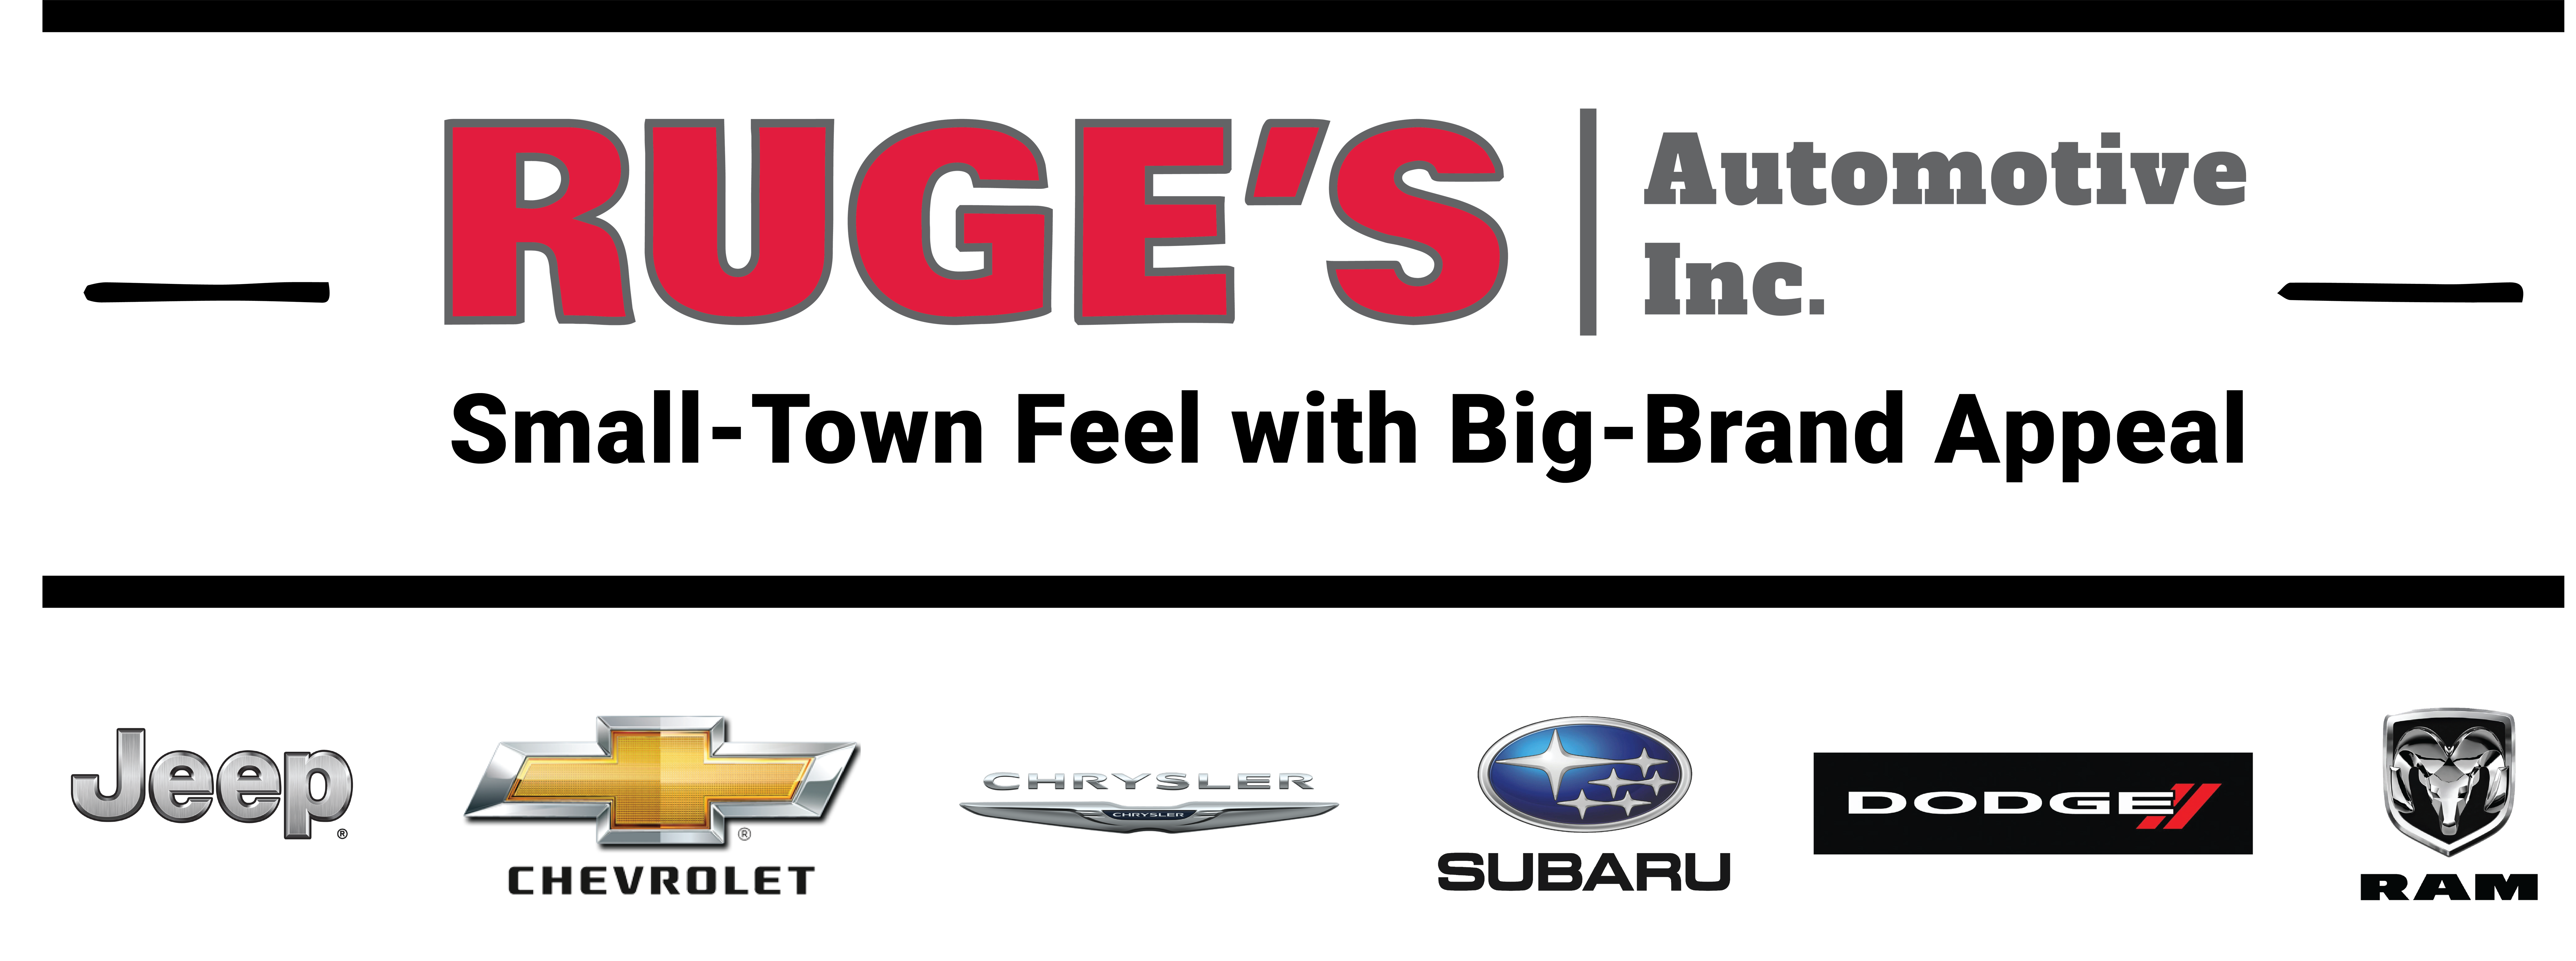 Automotive Service Receptionist Bdc Administrator Ruges Chevrolet Jobs In Millbrook New York Auto Careerss